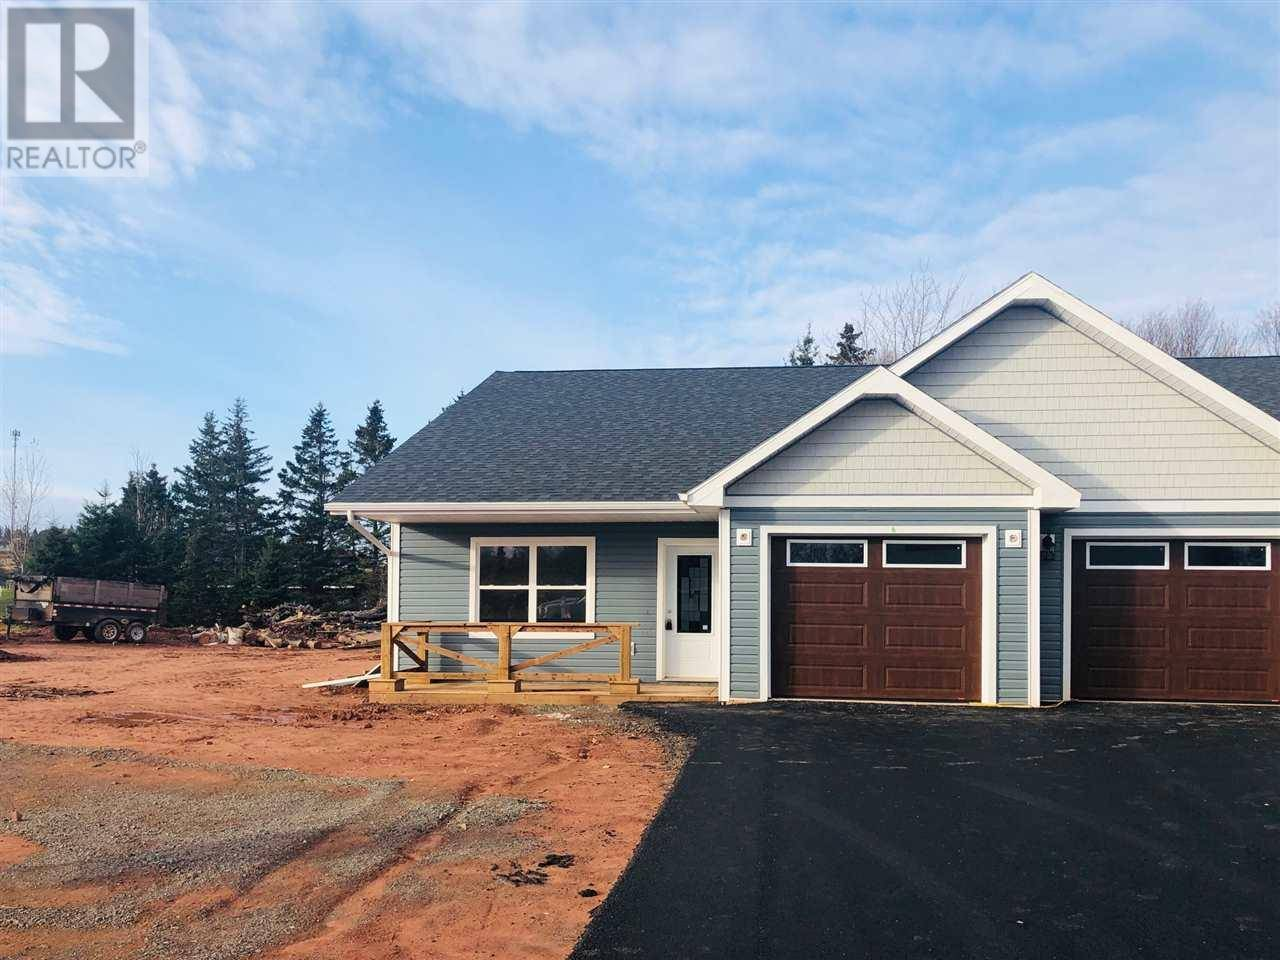 House for sale at 236 Hollis Ave Stratford Prince Edward Island - MLS: 201927267